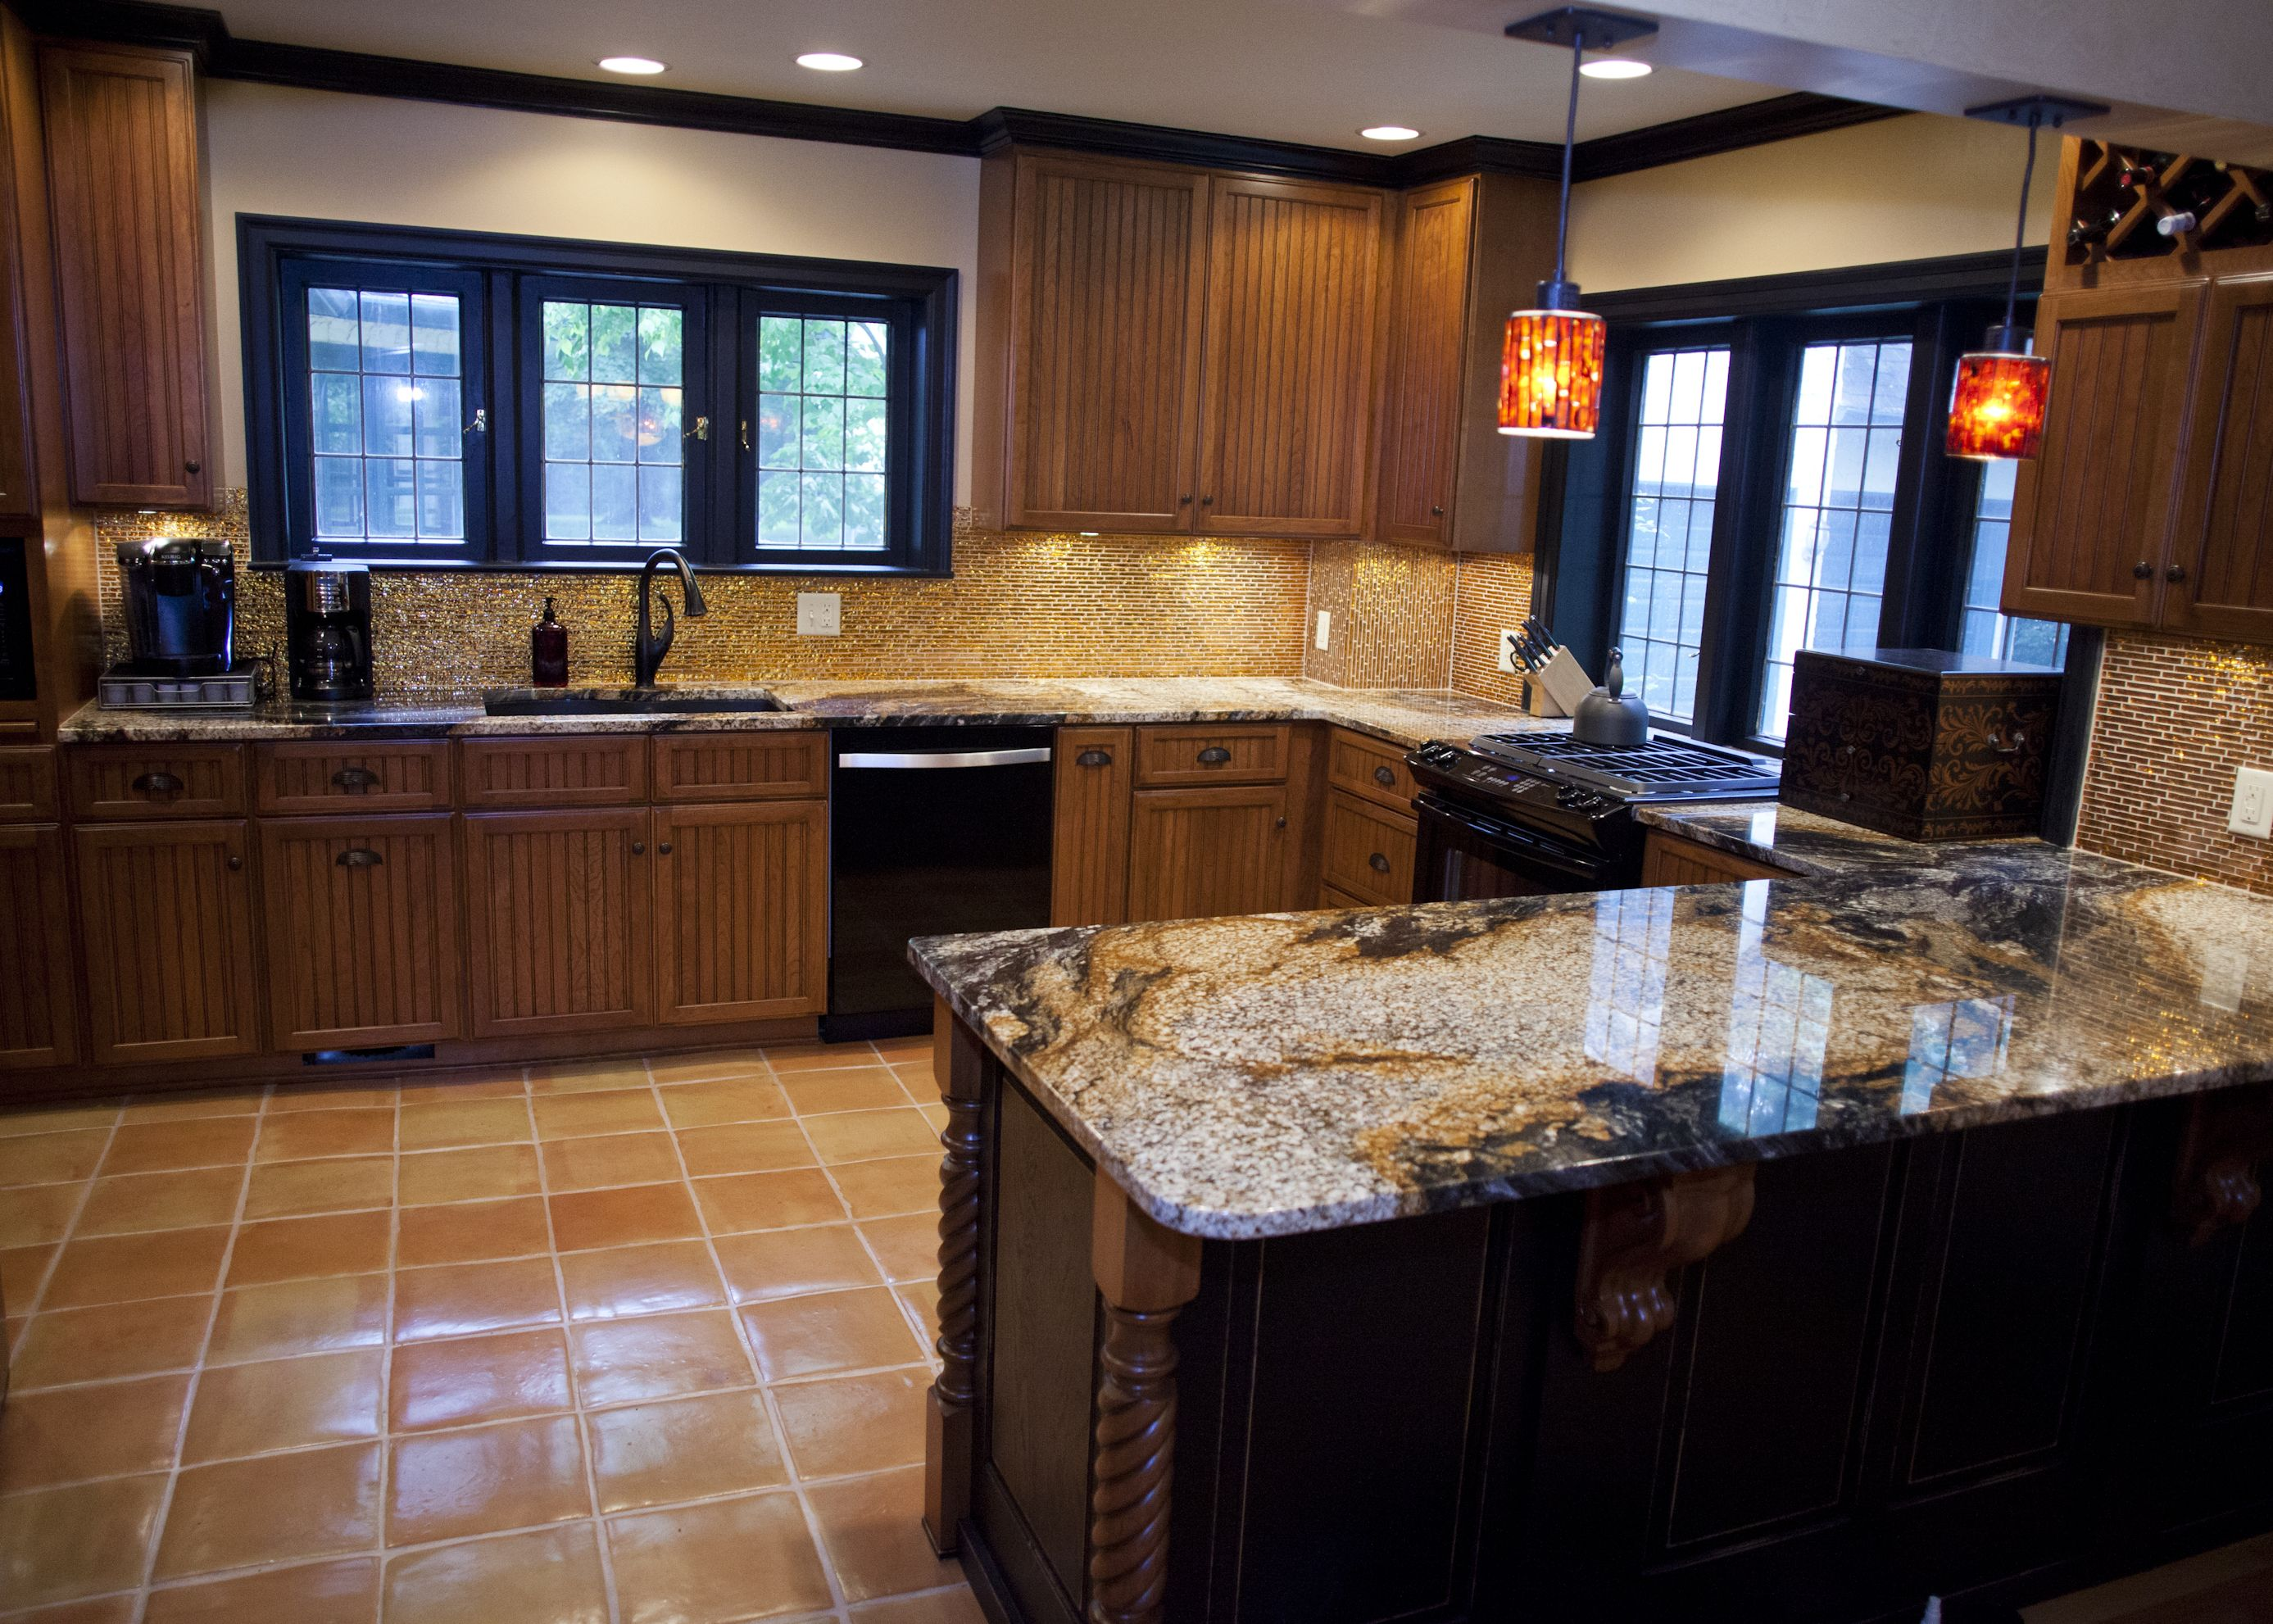 two toned cabinets two tone kitchen cabinets Two toned kitchen cabinets feature Pennington door style in Cherry with Rustic Pebble finish